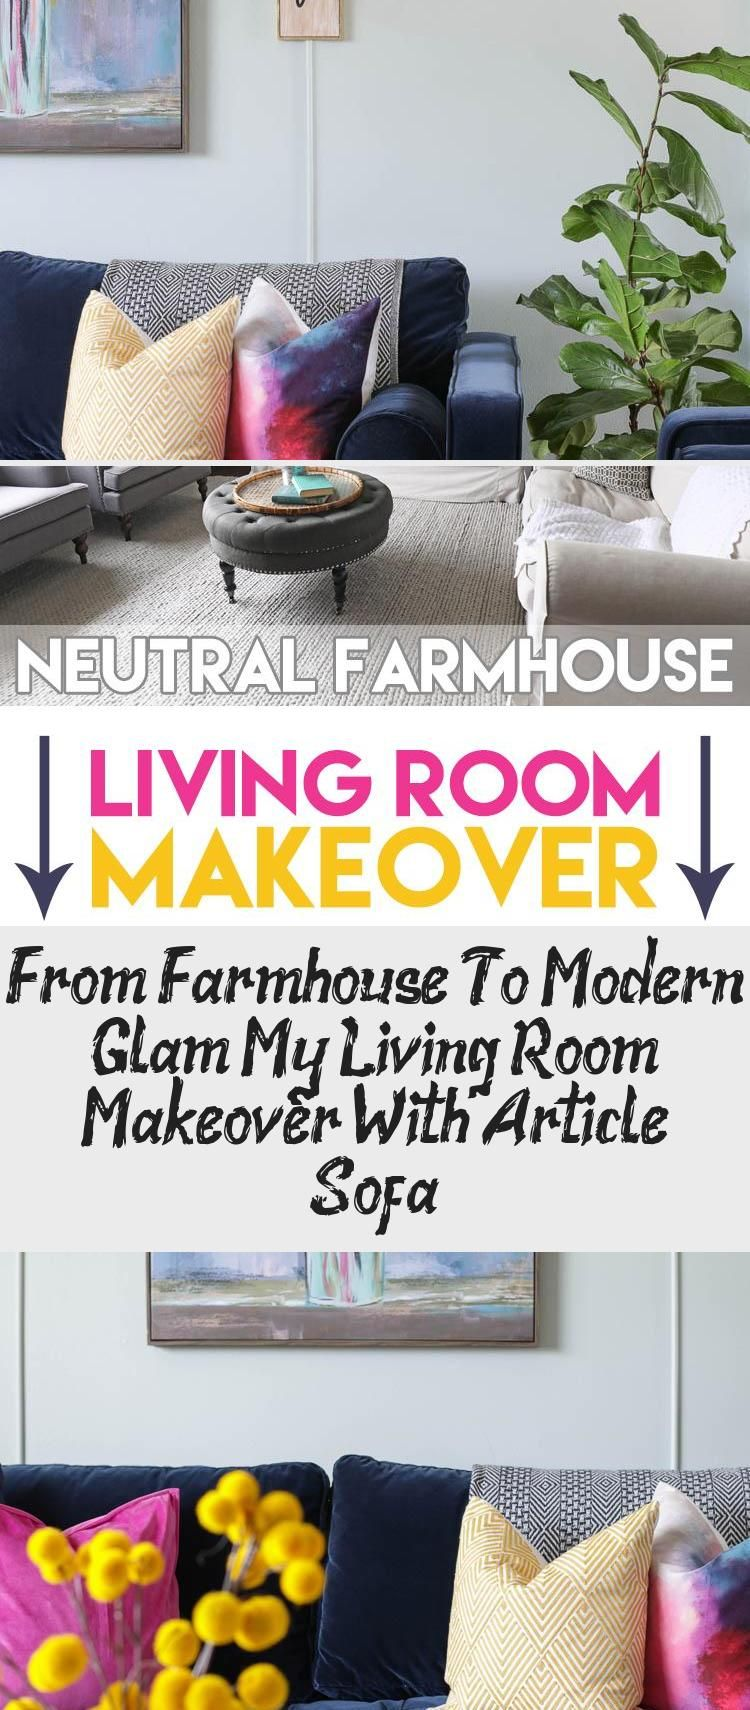 From Farmhouse To Modern Glam: My Living Room Makeover With Article Sofa – İnformation Decor